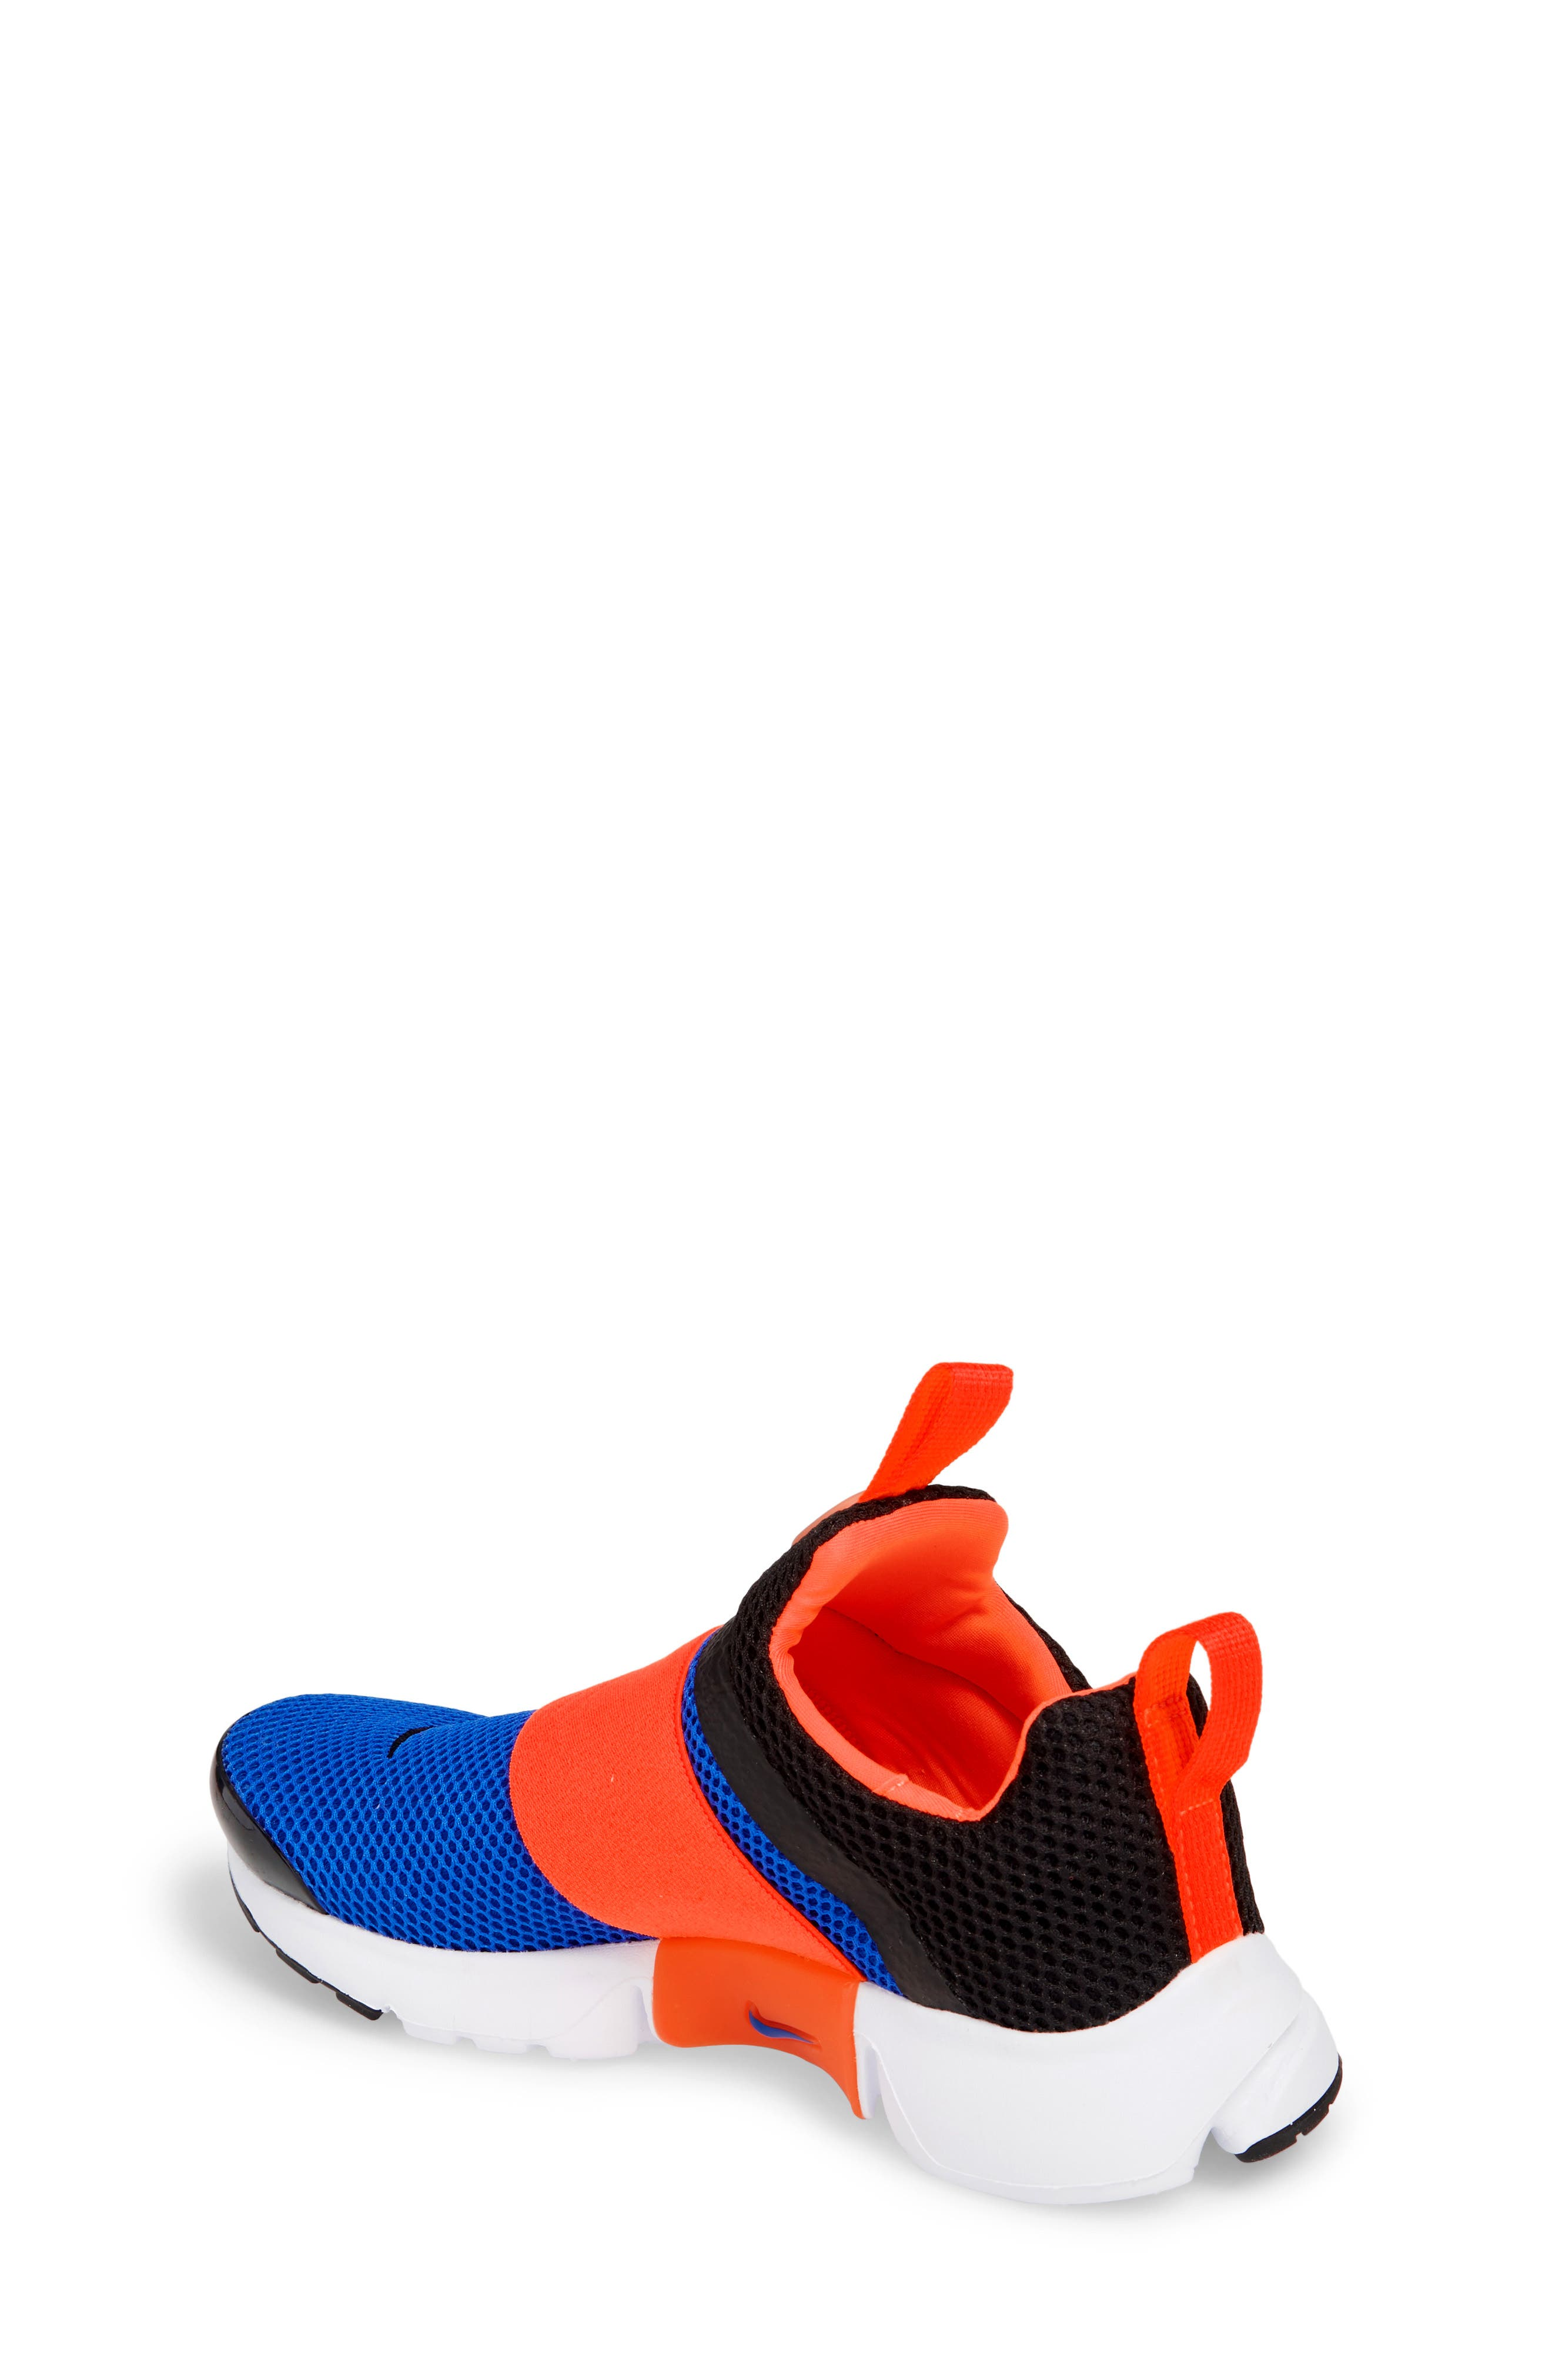 Presto Extreme Sneaker,                             Alternate thumbnail 2, color,                             004